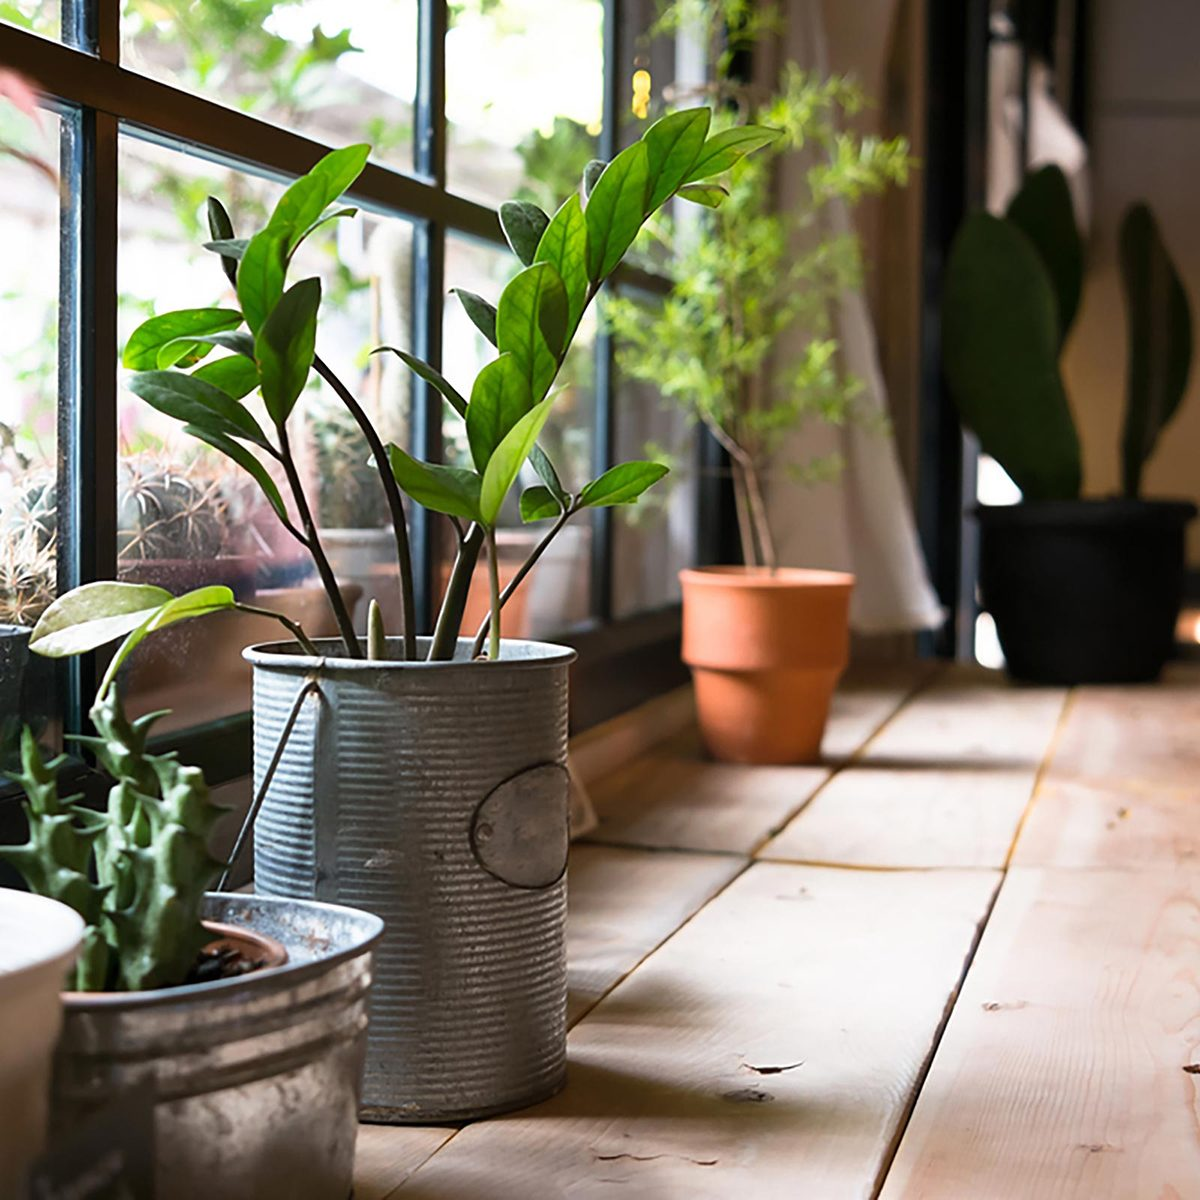 Several potted plants in front of a window